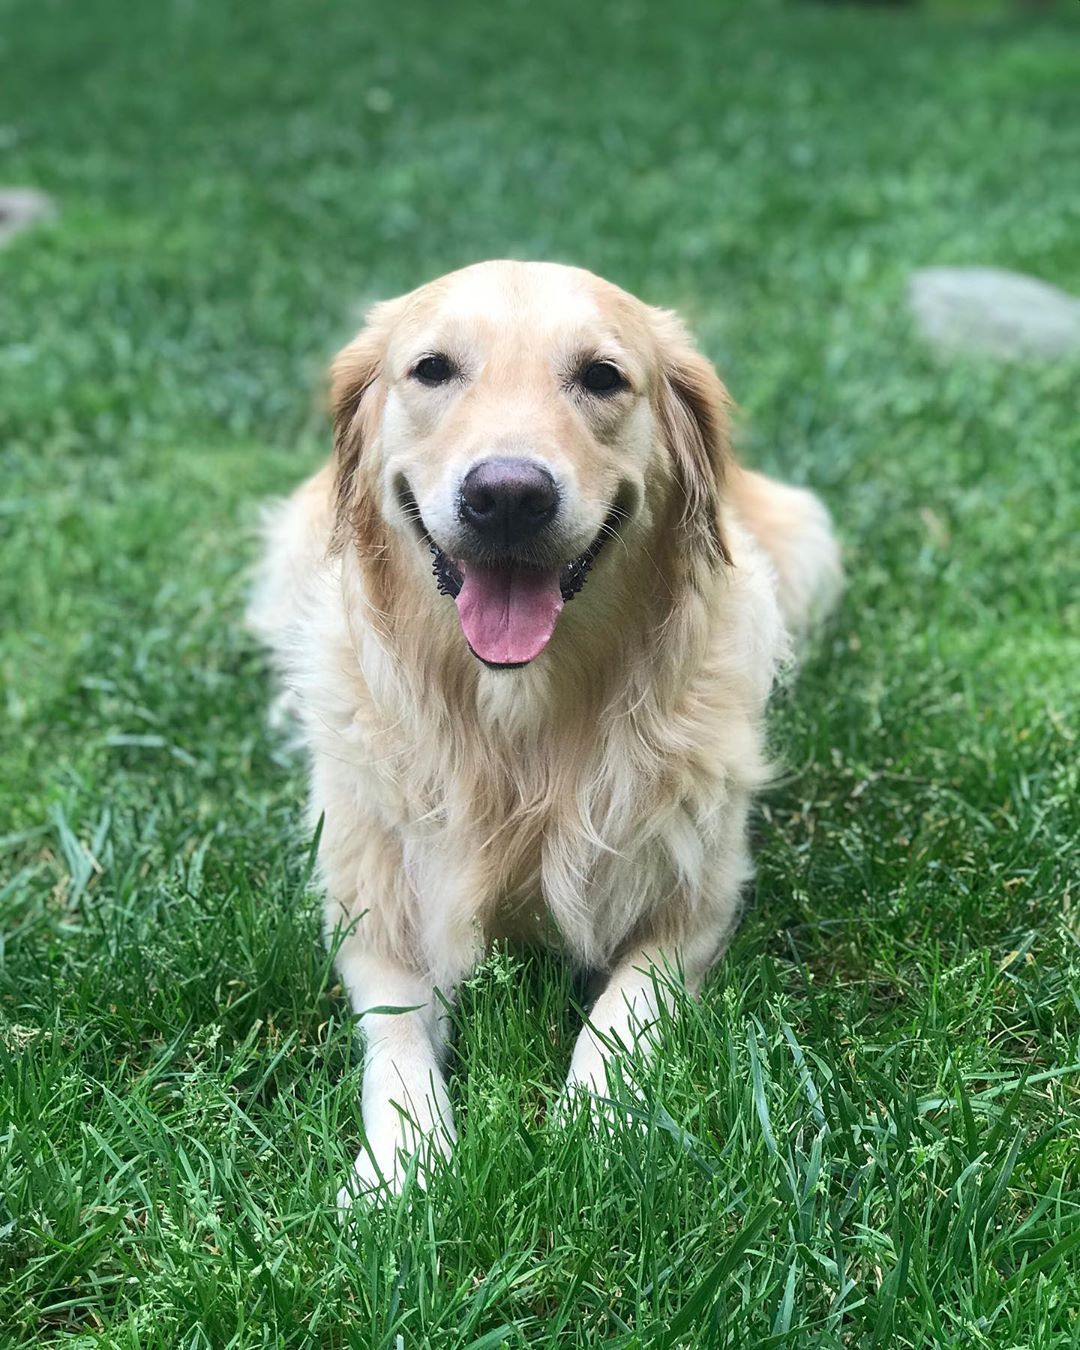 No Text In 2020 Pets Golden Retriever Dogs